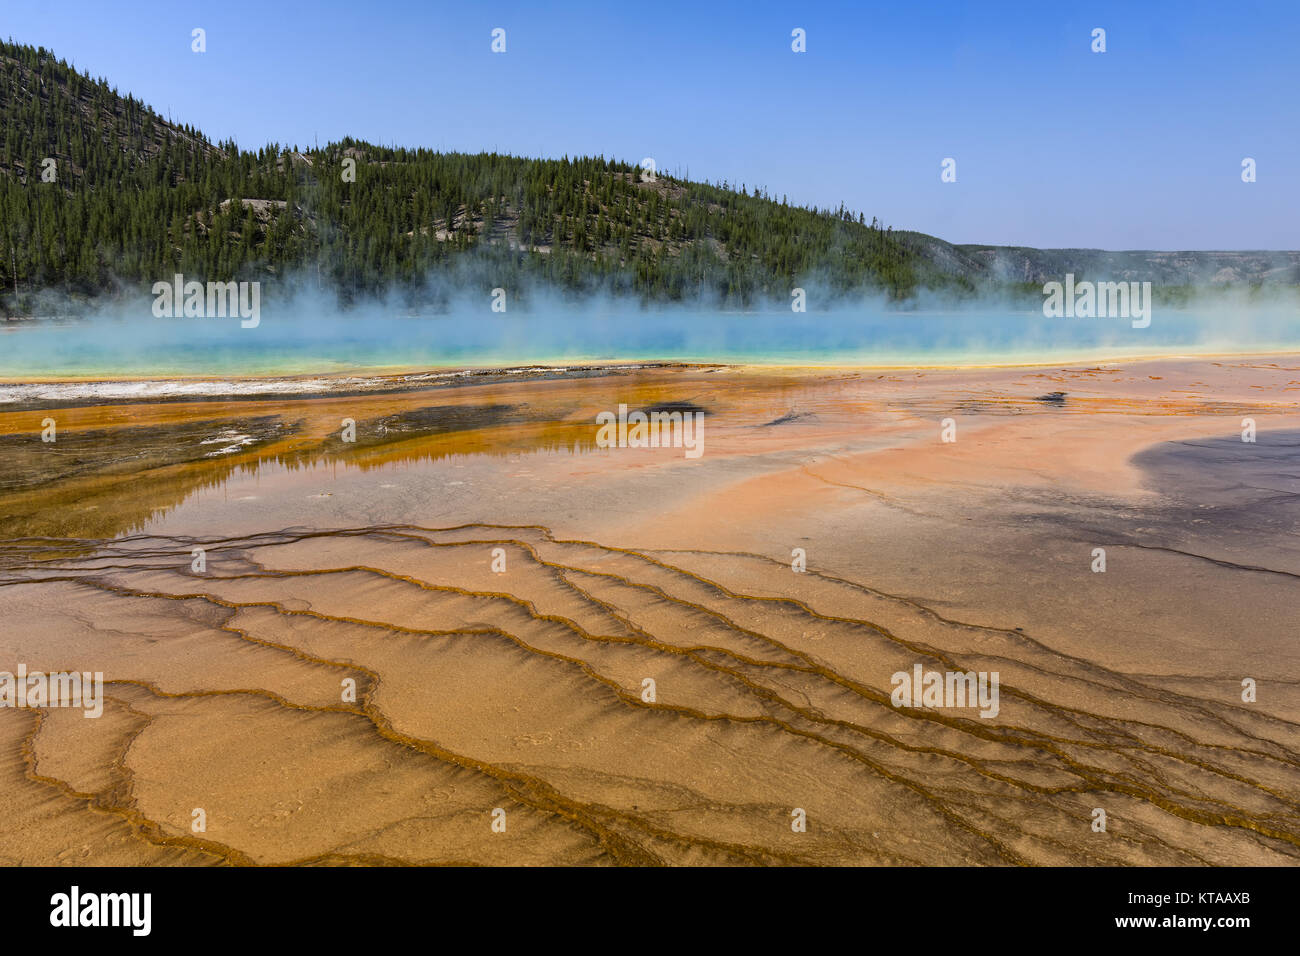 The colrful Grand Prismatic Spring at Yellowstone National Park Wyoming USA against a blue sky - Stock Image